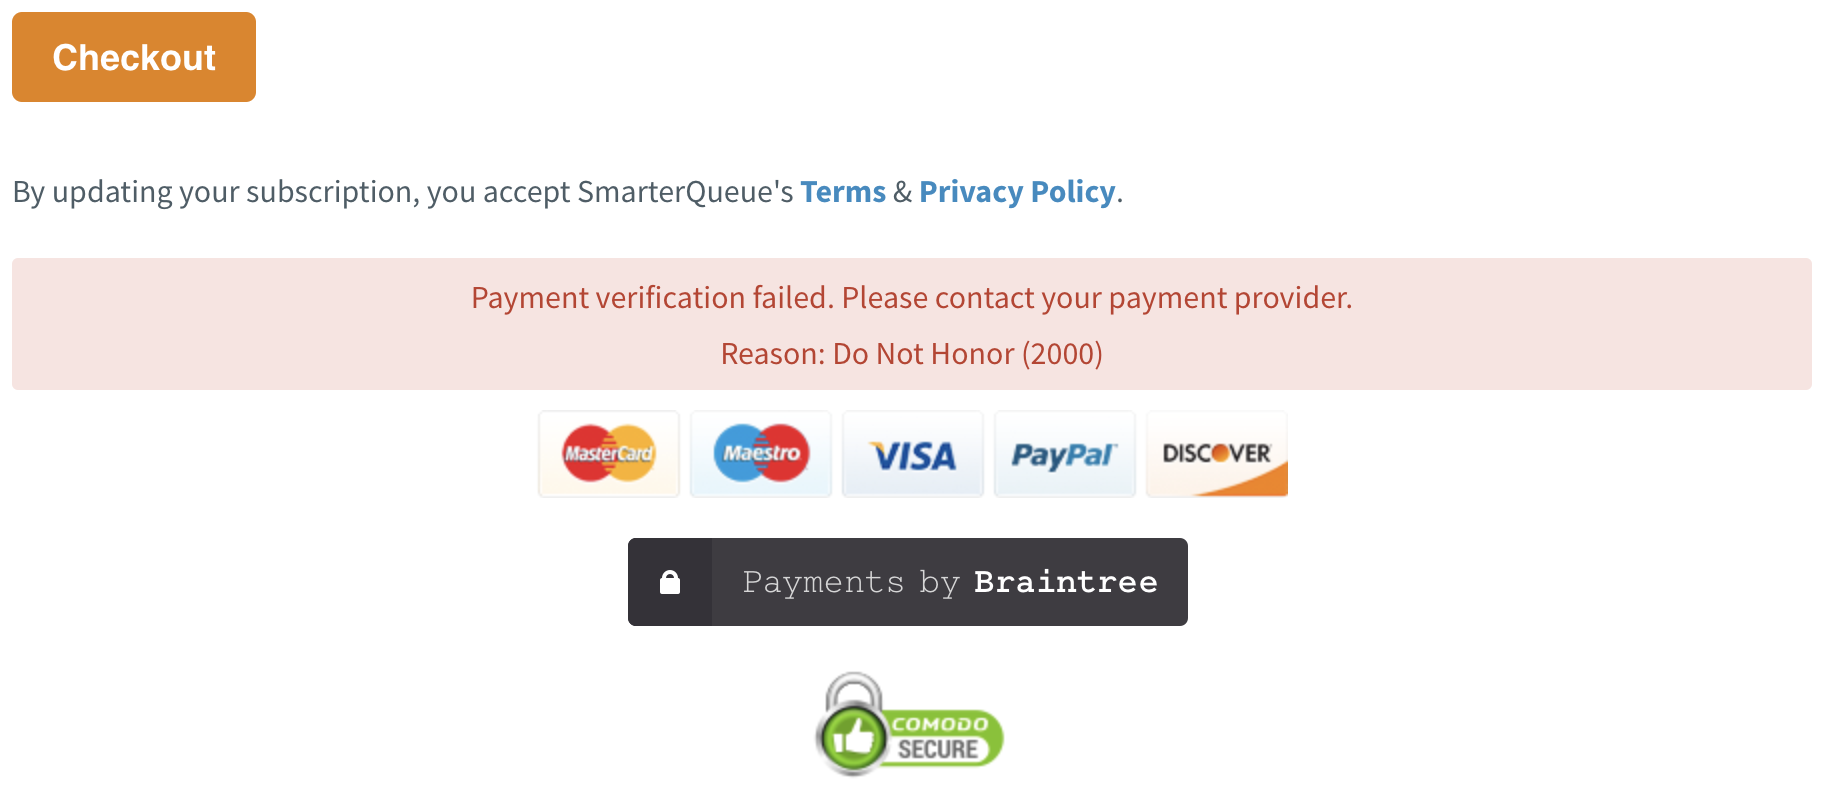 How To Resolve Payment Issues - SmarterQueue Support